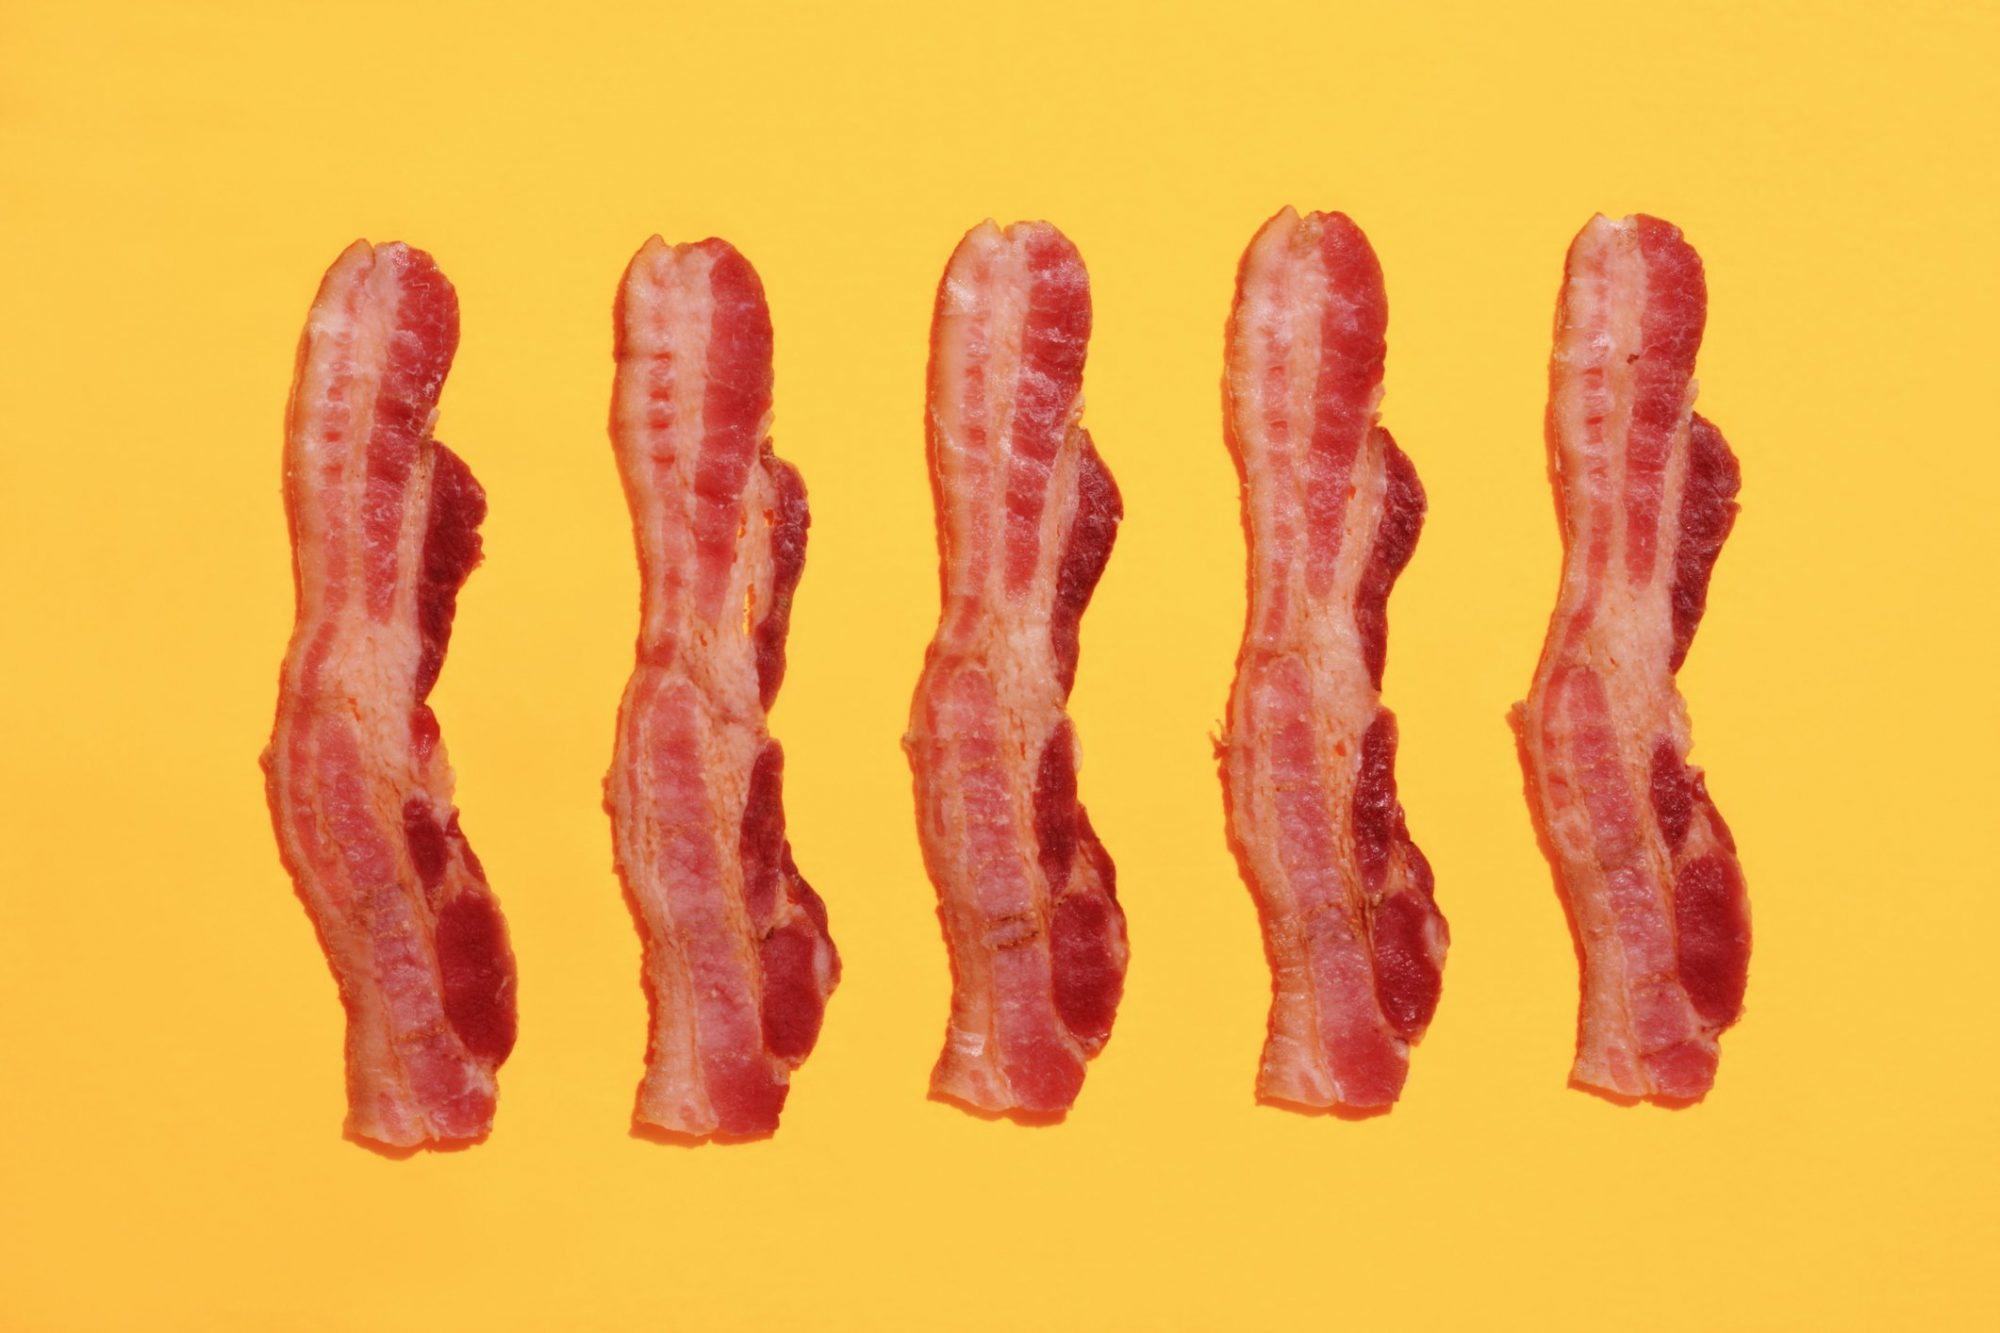 Don't Worry, America. We're Not Running Out of Bacon, Industry Experts Say